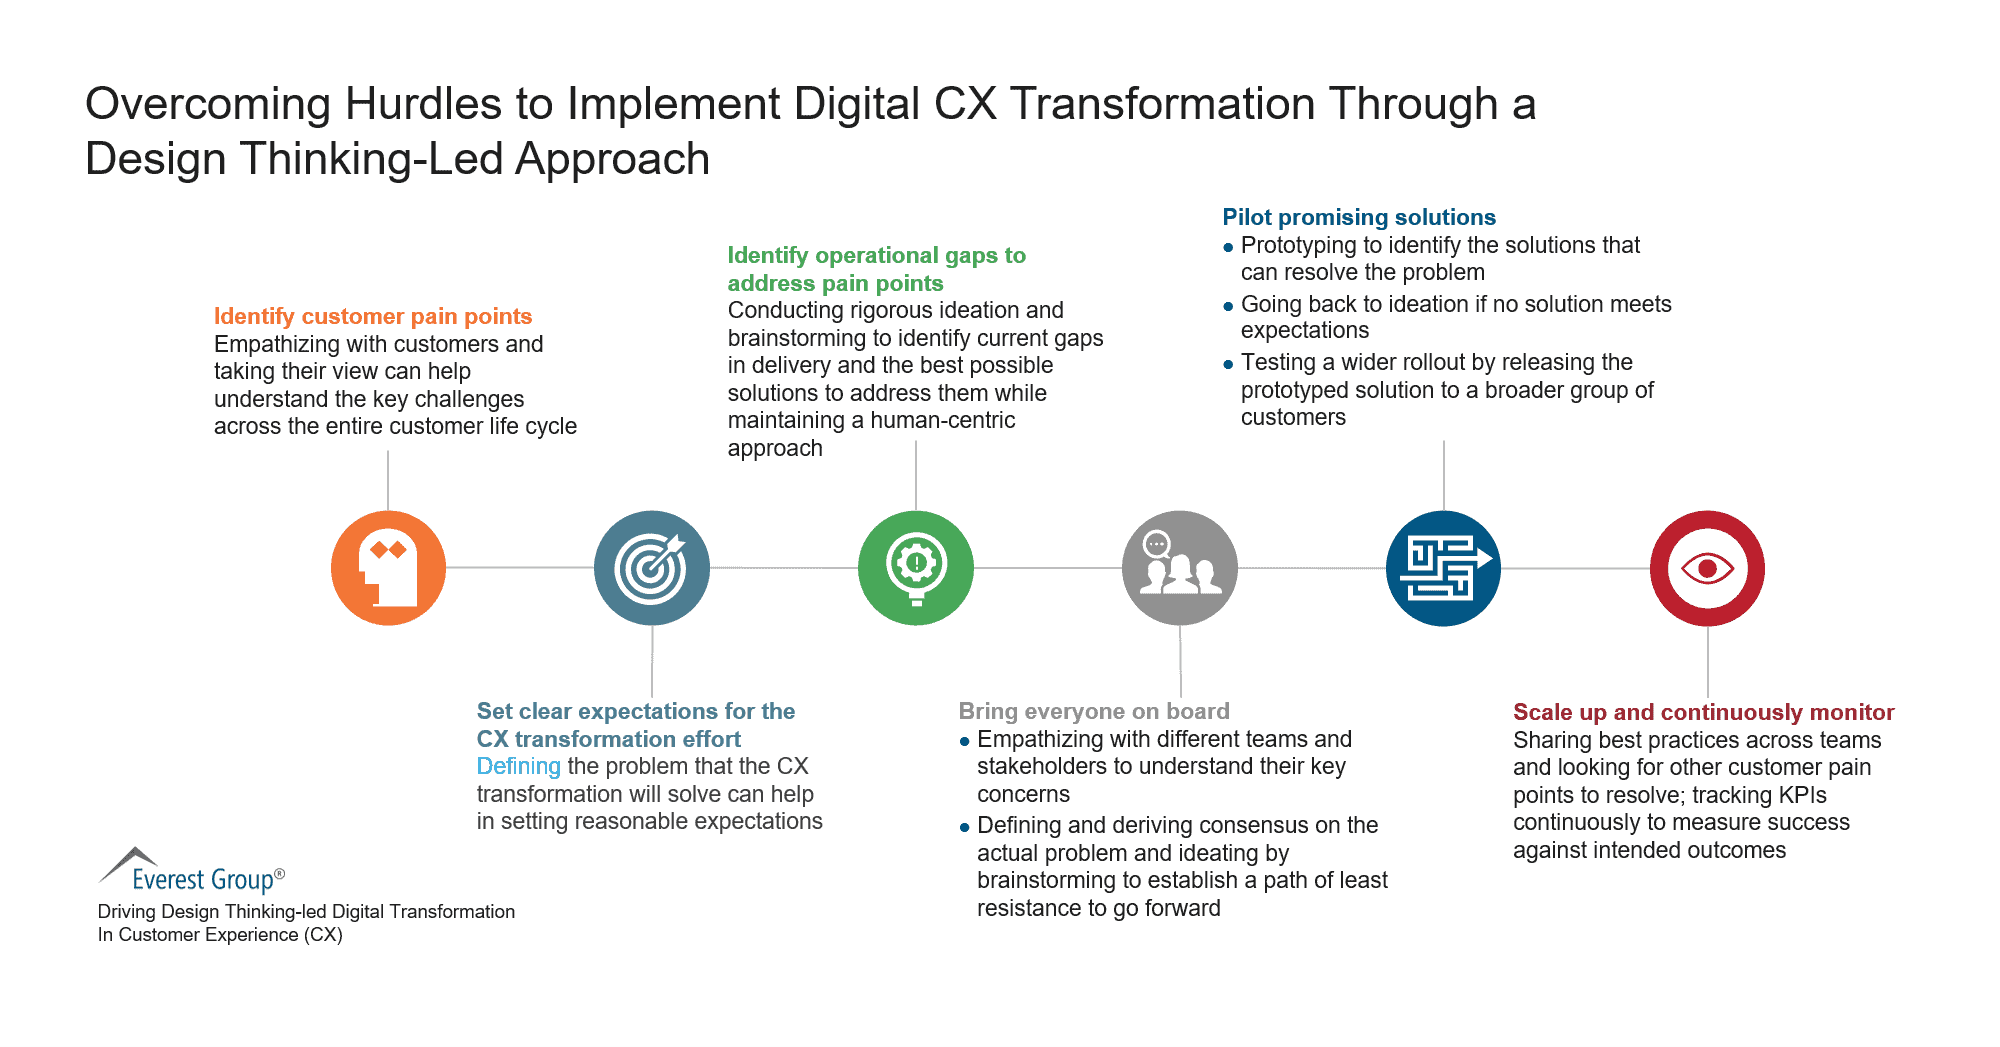 Overcoming Hurdles to Implement Digital CX Transformation Through a Design-Led Approach